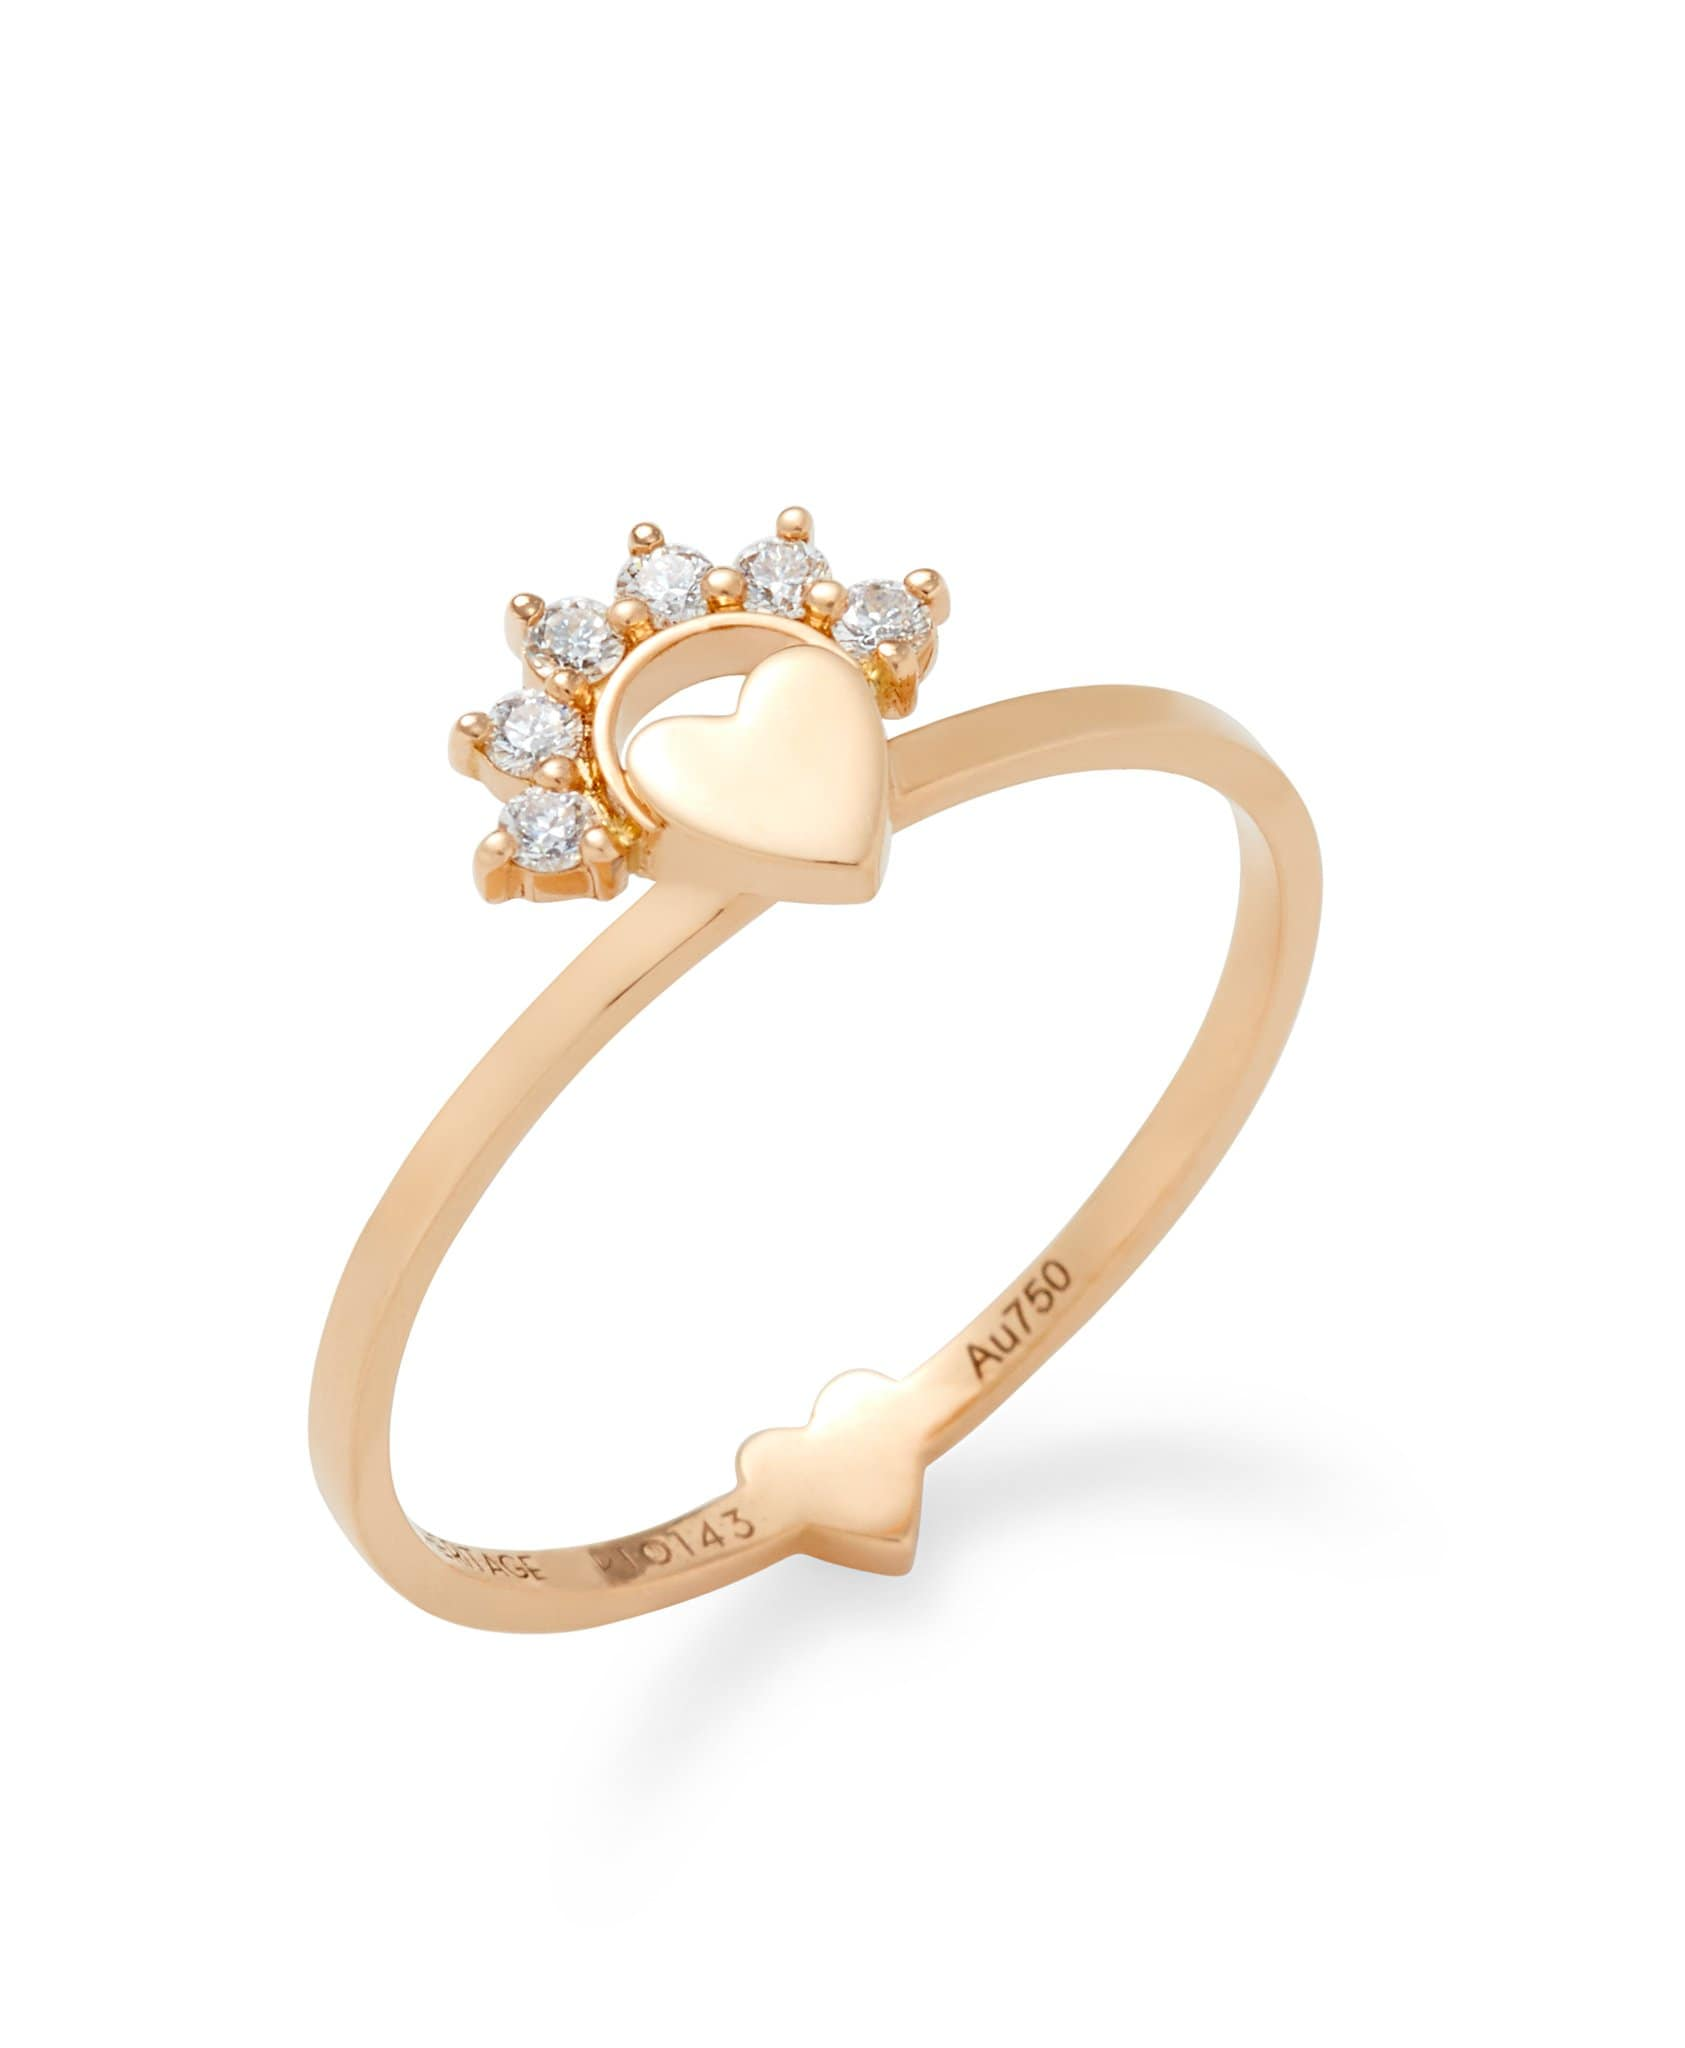 Small Love Ring - Nouvel Heritage